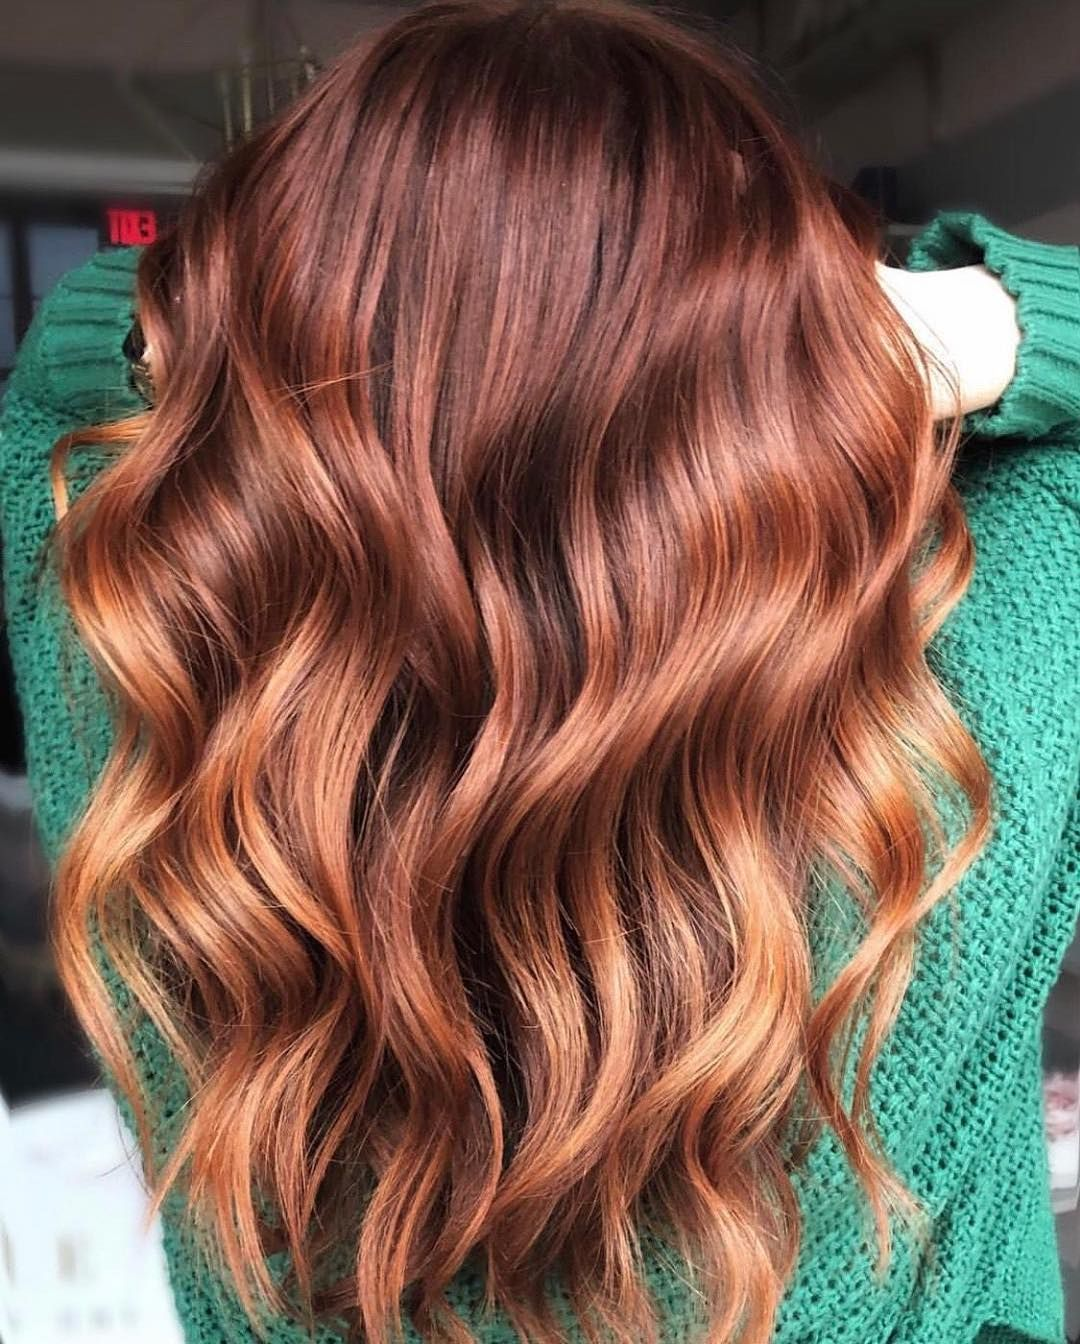 Our 10 Most-Liked Posts from Instagram this Week #copperbalayage